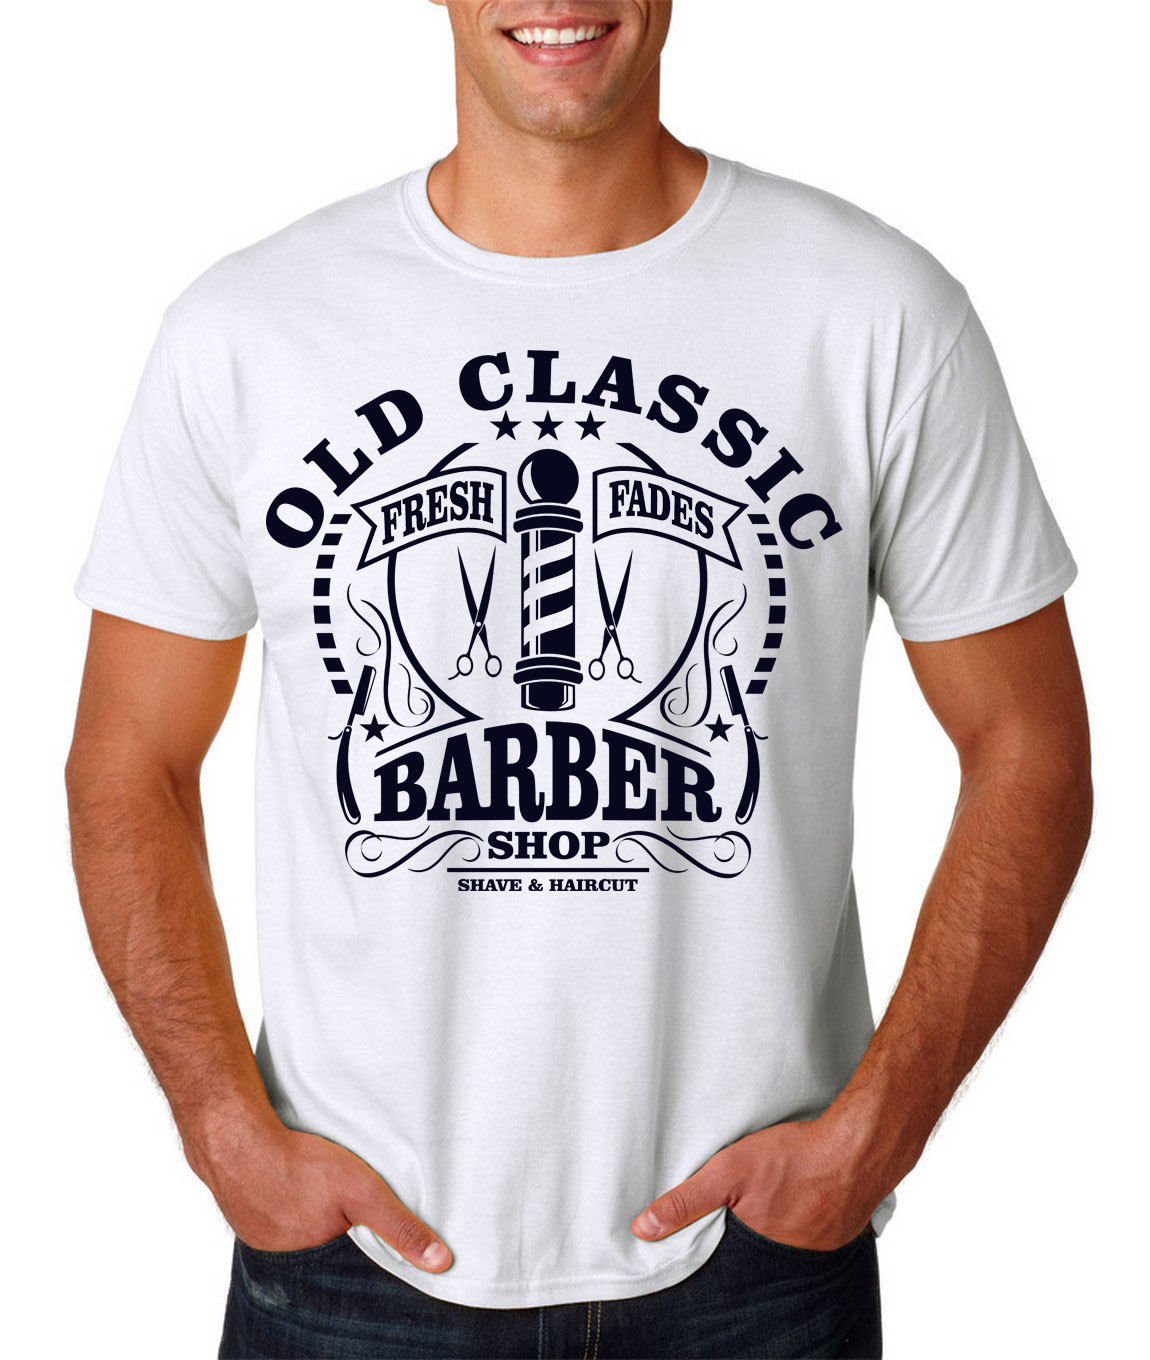 old classic barber shop vintage shave shaver knife dtg mens t shirt tees Fashion T-Shirts Summer Straight 100% Cotton